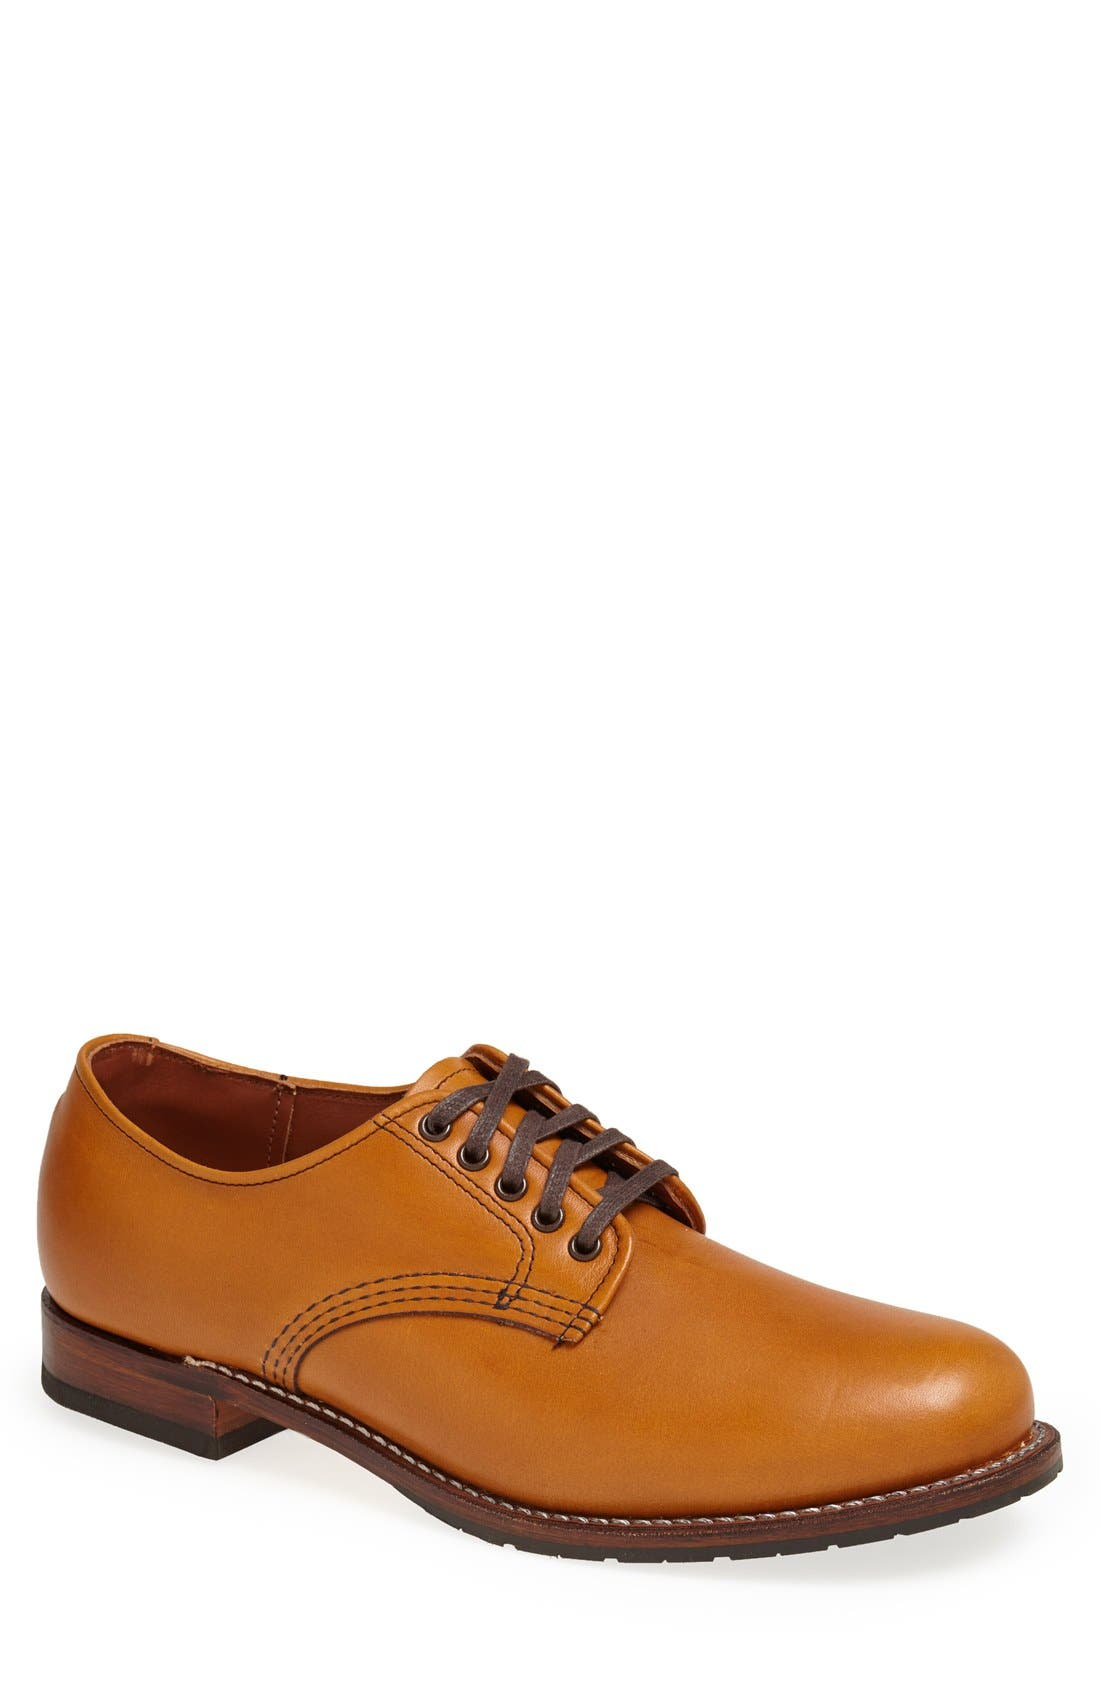 Alternate Image 1 Selected - Red Wing 'Beckman' Derby